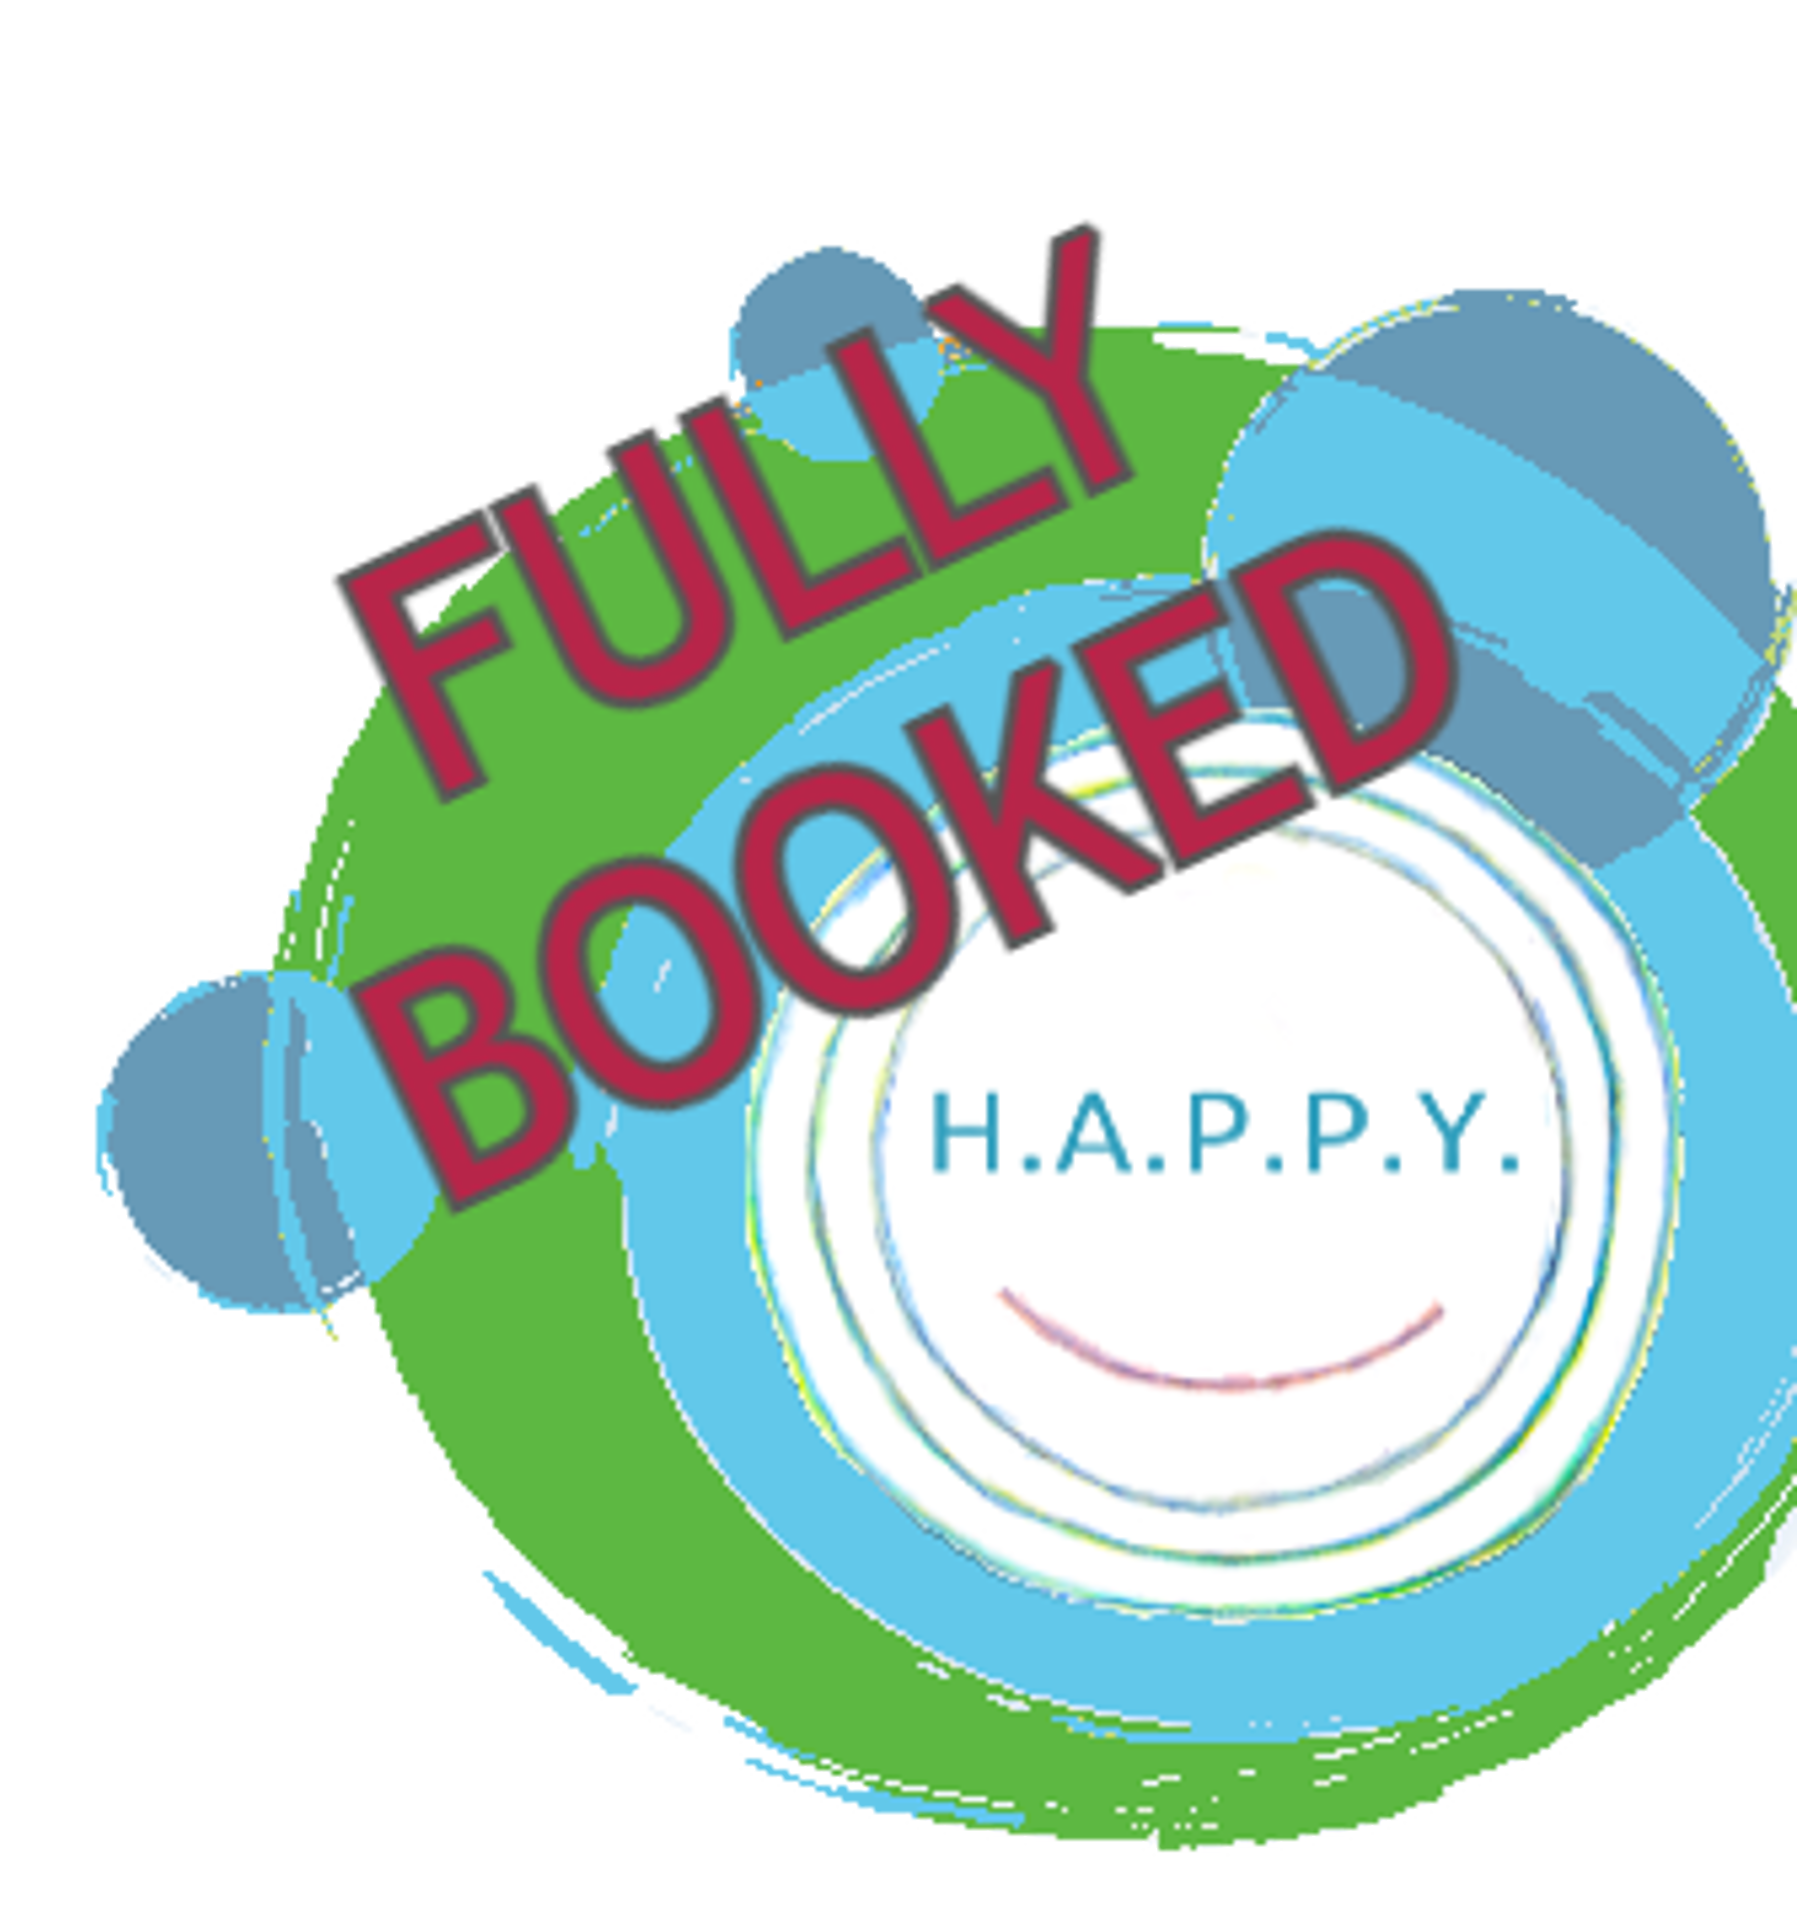 Fully booked HAPPY logo.png